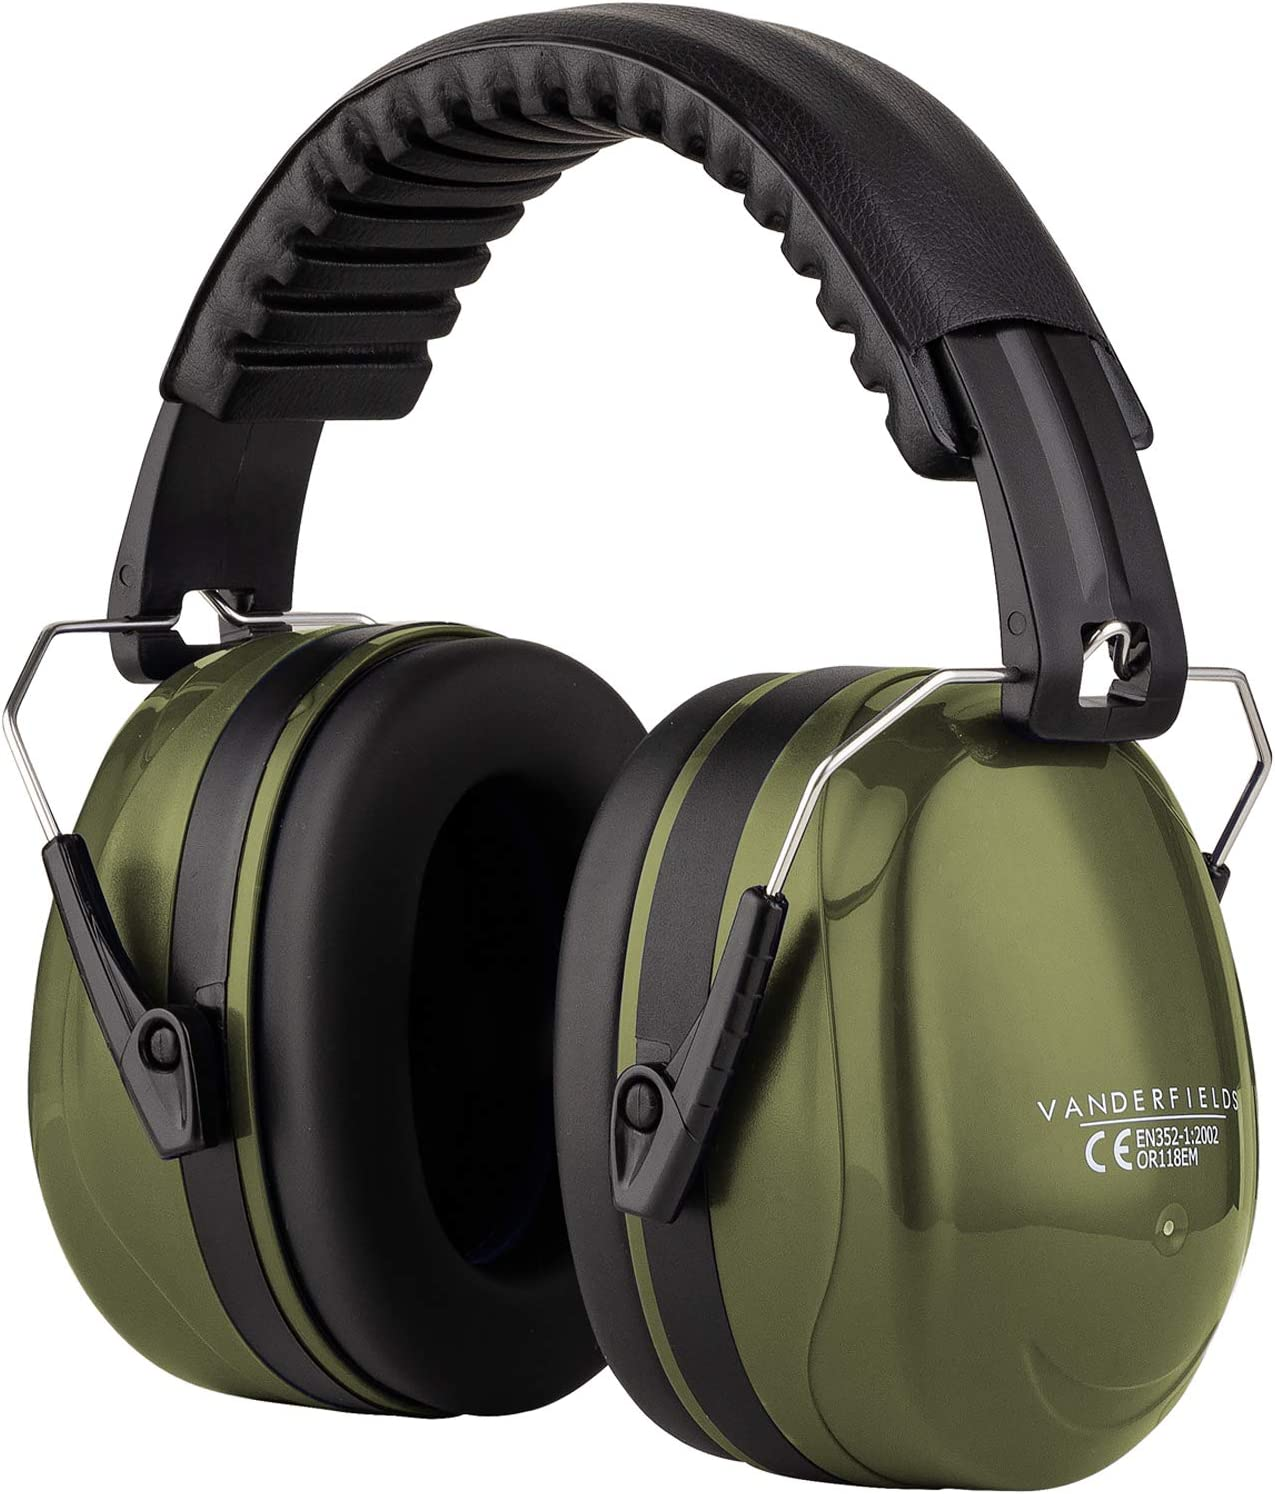 Ear Defenders Adult - Foldable Hearing Protection Ear Muffs Noise Cancelling - Perfect for DIYm Working, Shooting, Gardening - Adjustable Headband for Adults Men Women - 2 Years Warranty - Green